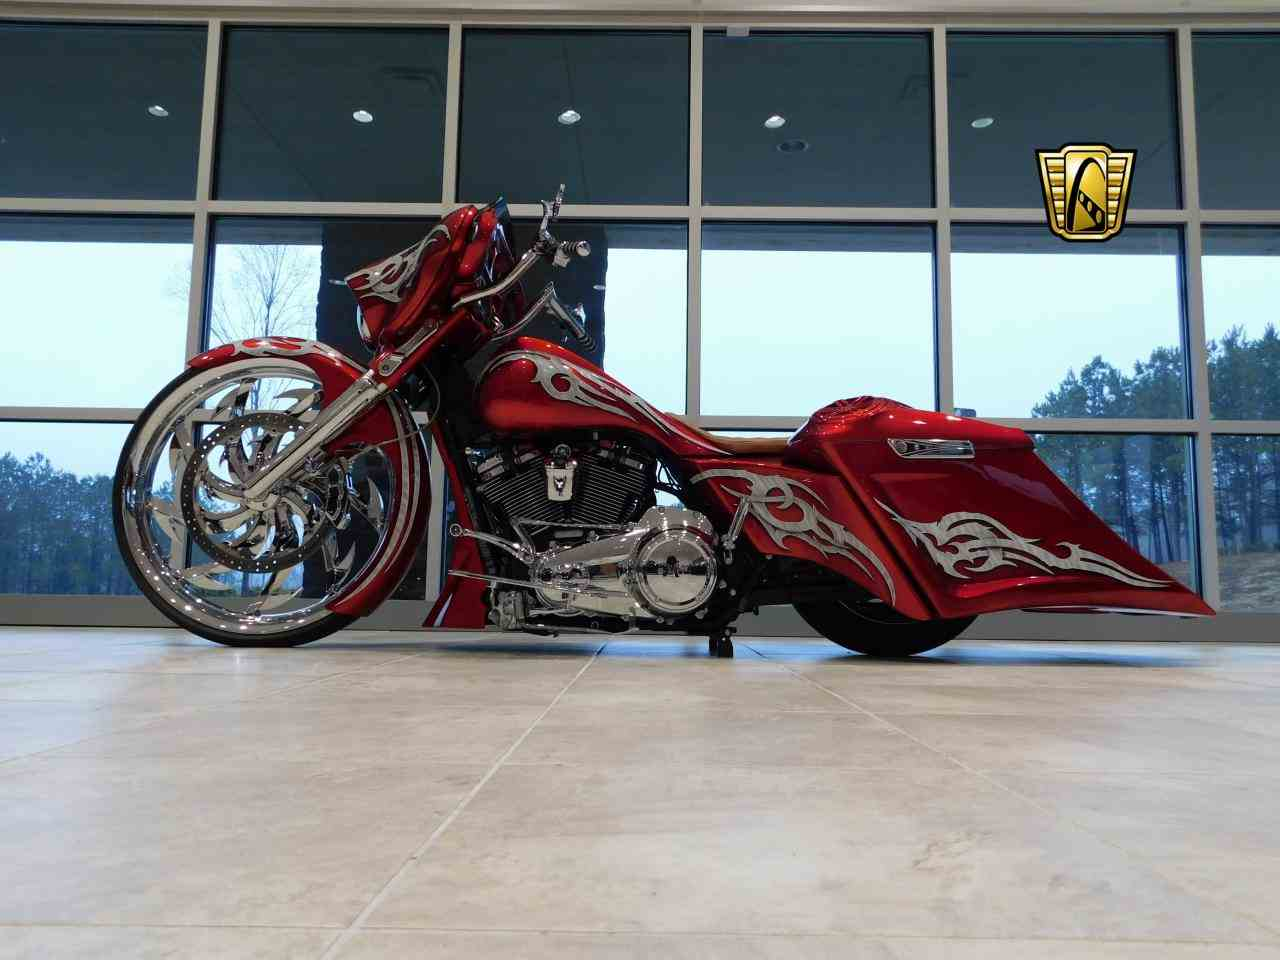 Large Picture of '17 Harley-Davidson Motorcycle located in Georgia - $98,000.00 Offered by Gateway Classic Cars - Atlanta - MOAJ